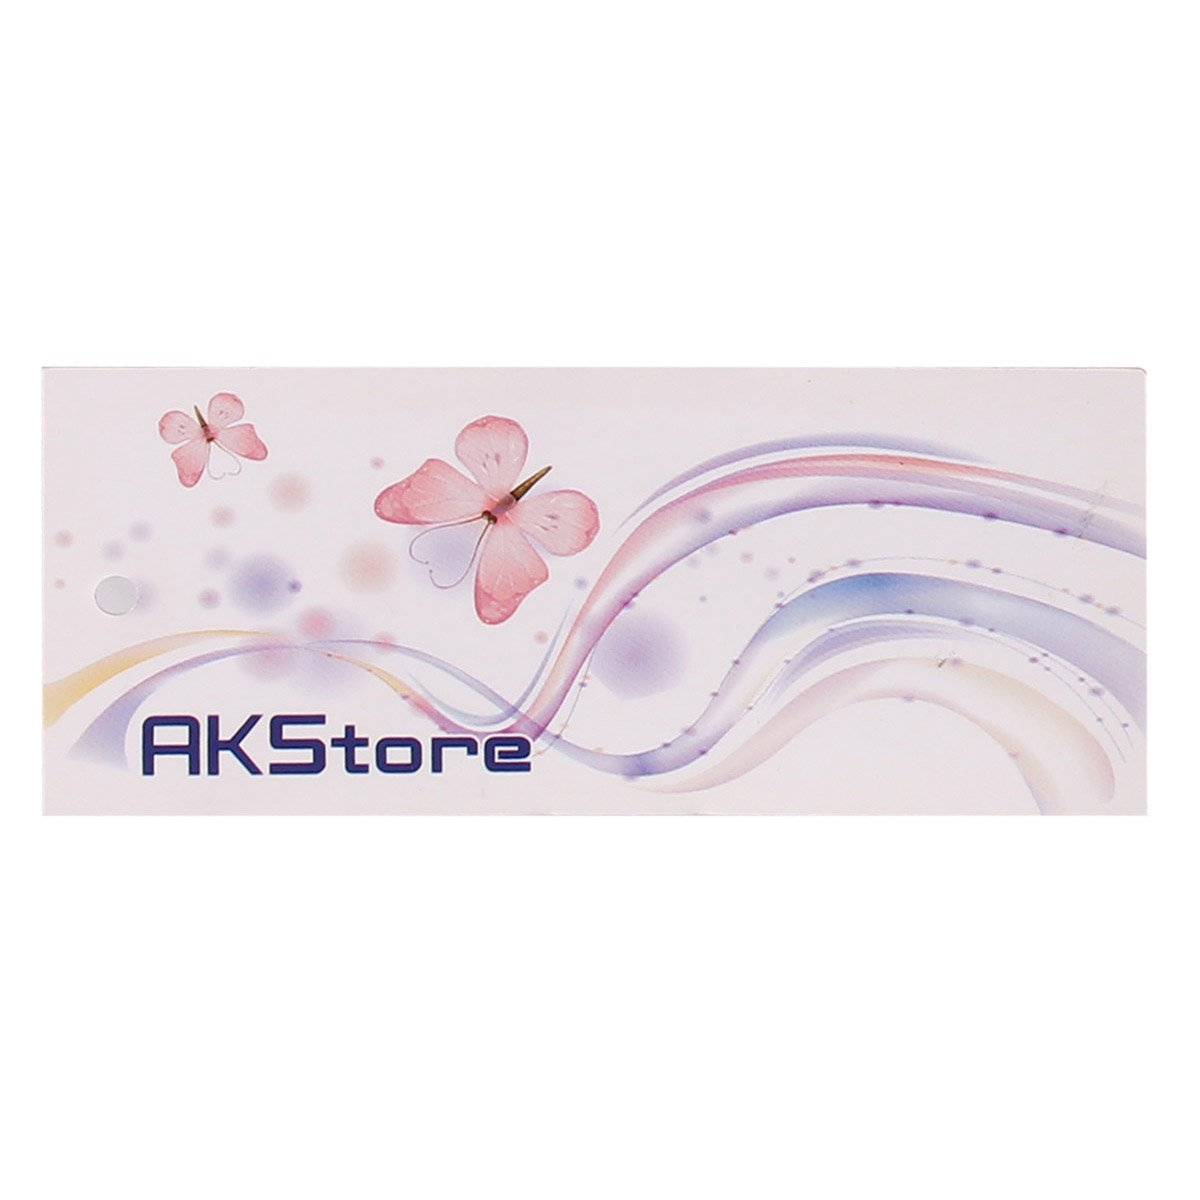 20PCS Set Arts Fake Temporary Tattoo Arm Sunscreen Sleeves - AKStore - Designs Tiger, Crown Heart, Skull, Tribal and Etc by Akstore (Image #7)